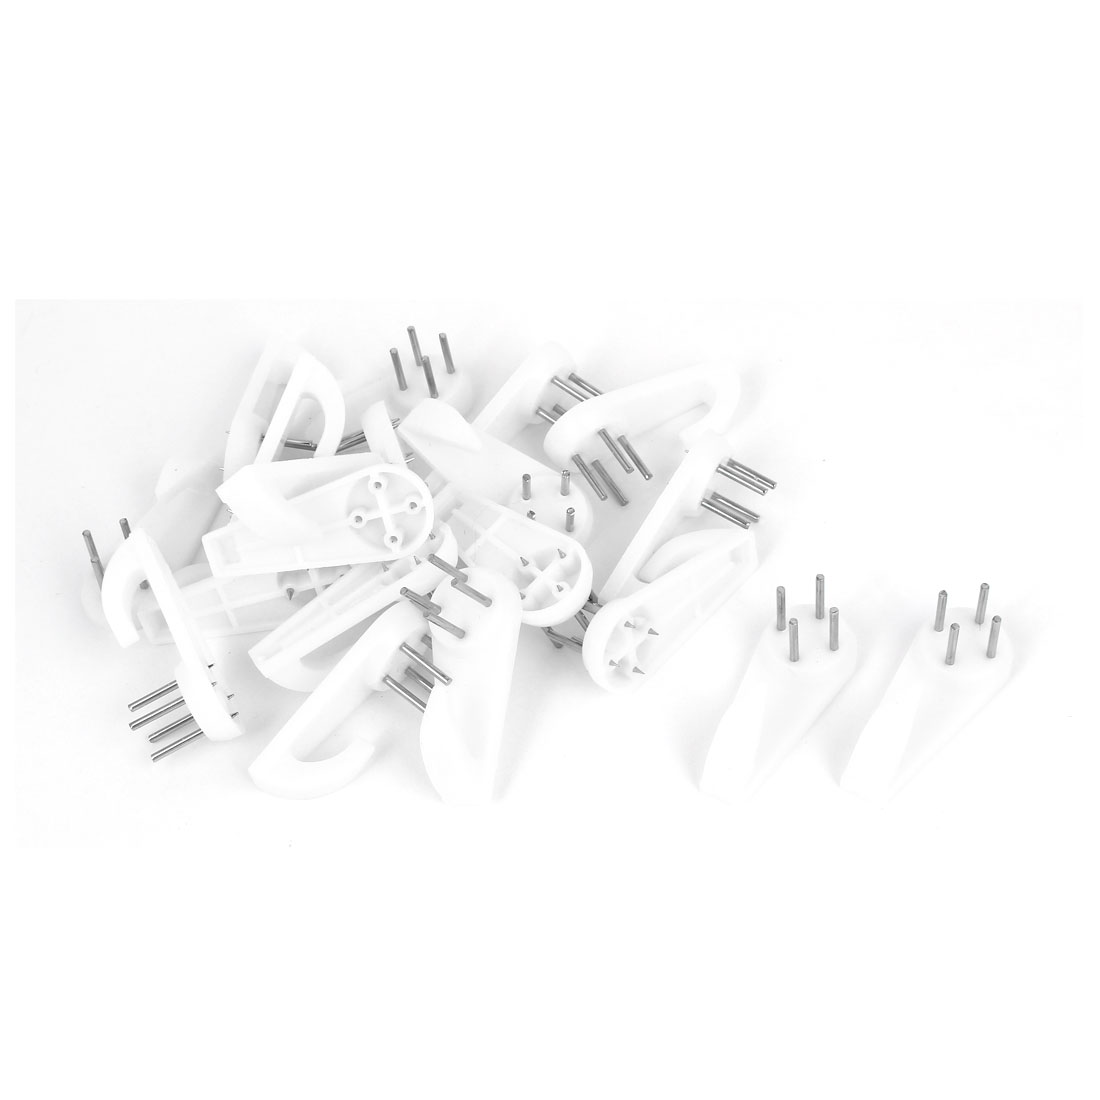 Household Plastic Wall Hook Hanger Seamless Nail White 20pcs for Picture Frame